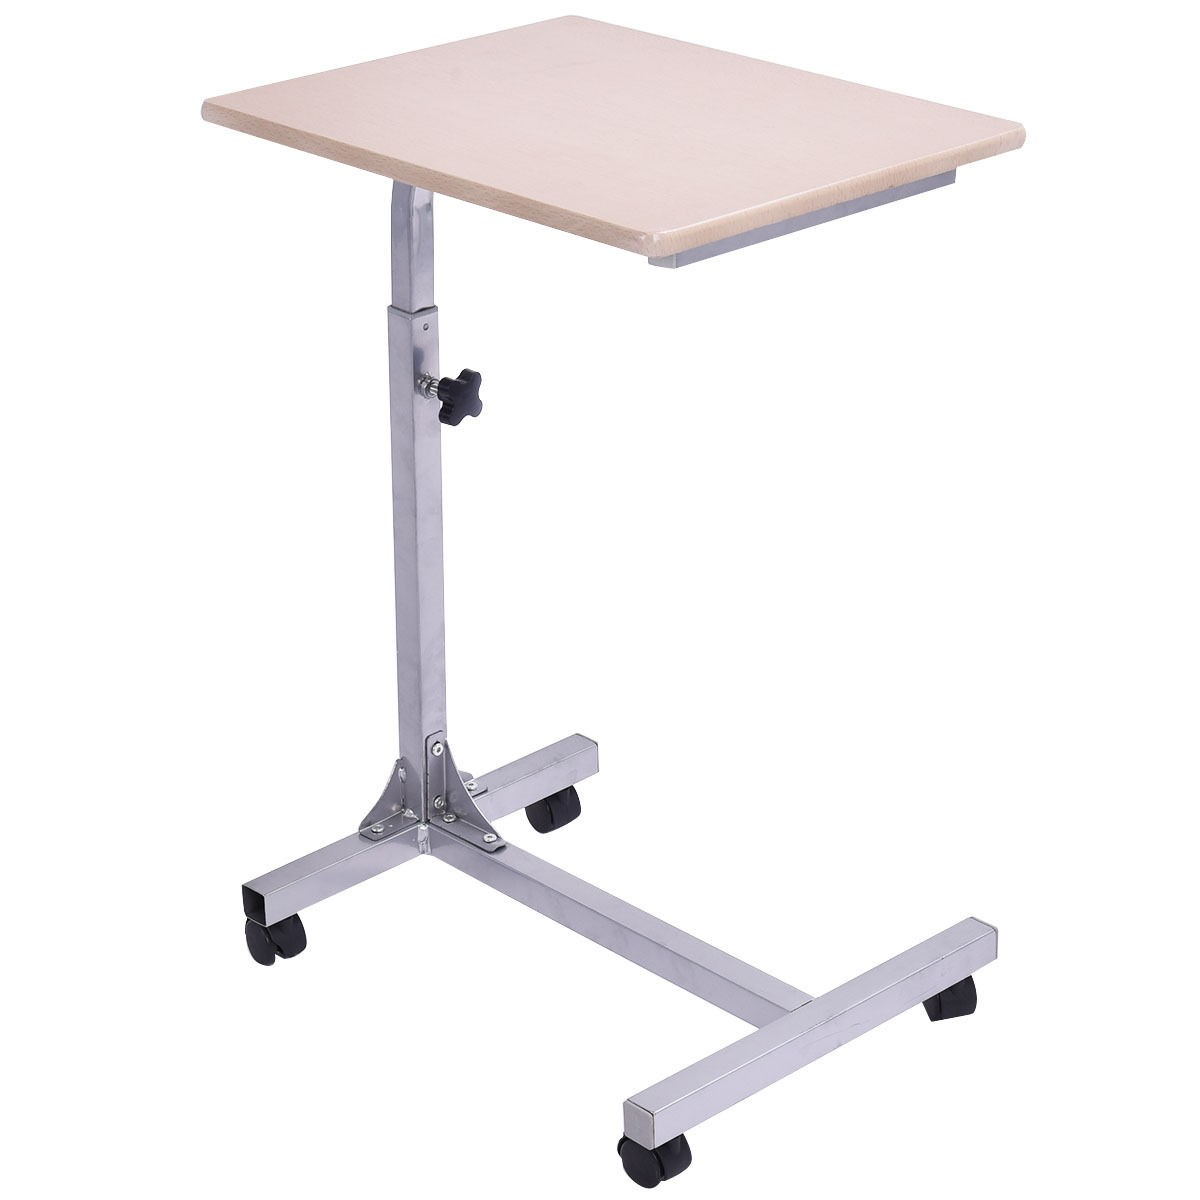 Adjustable wooden laptop table stand work study rolling